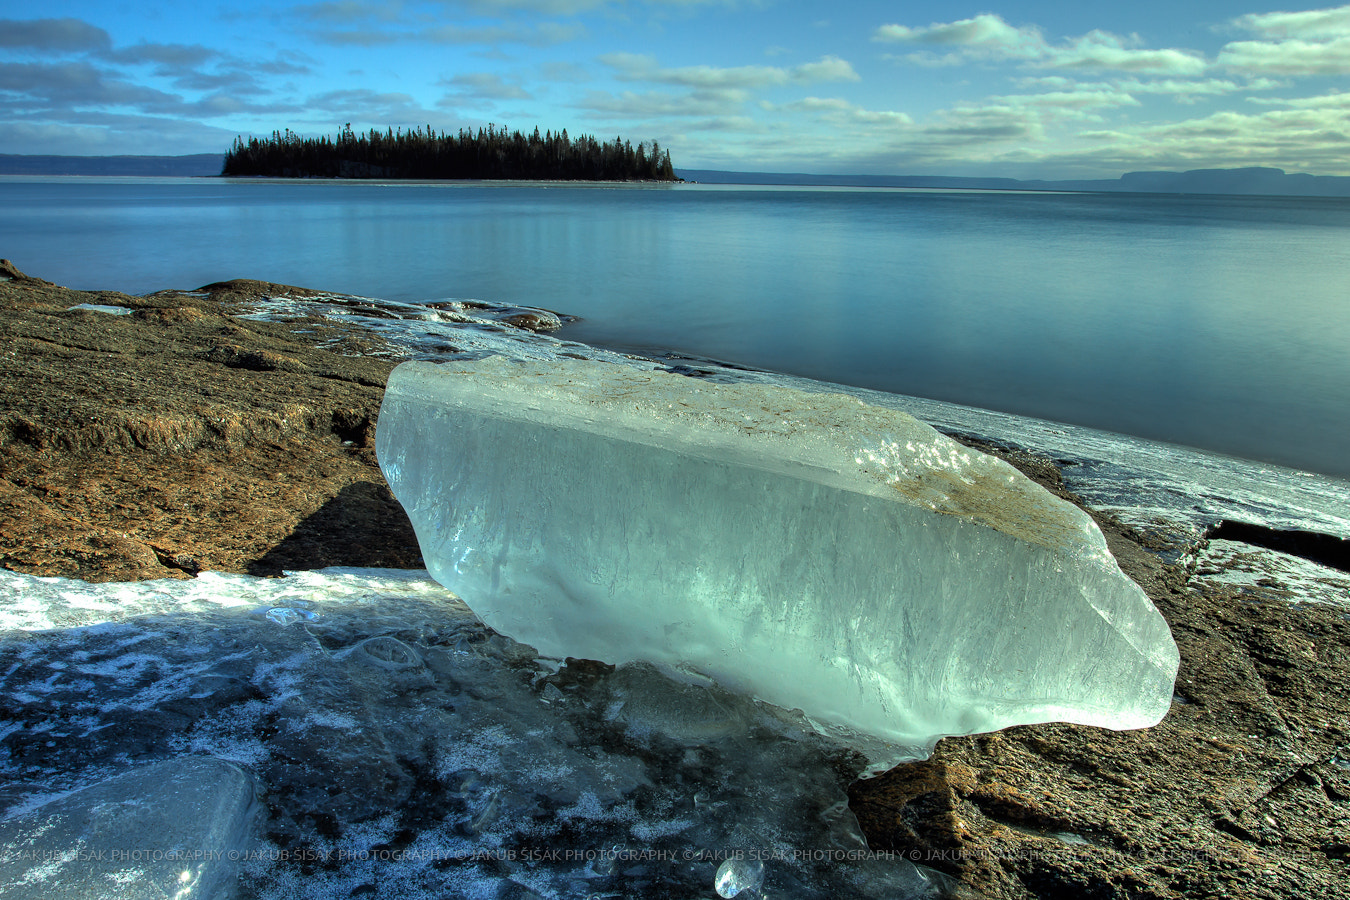 Photograph Spring in January Block of Ice by Jakub Sisak on 500px